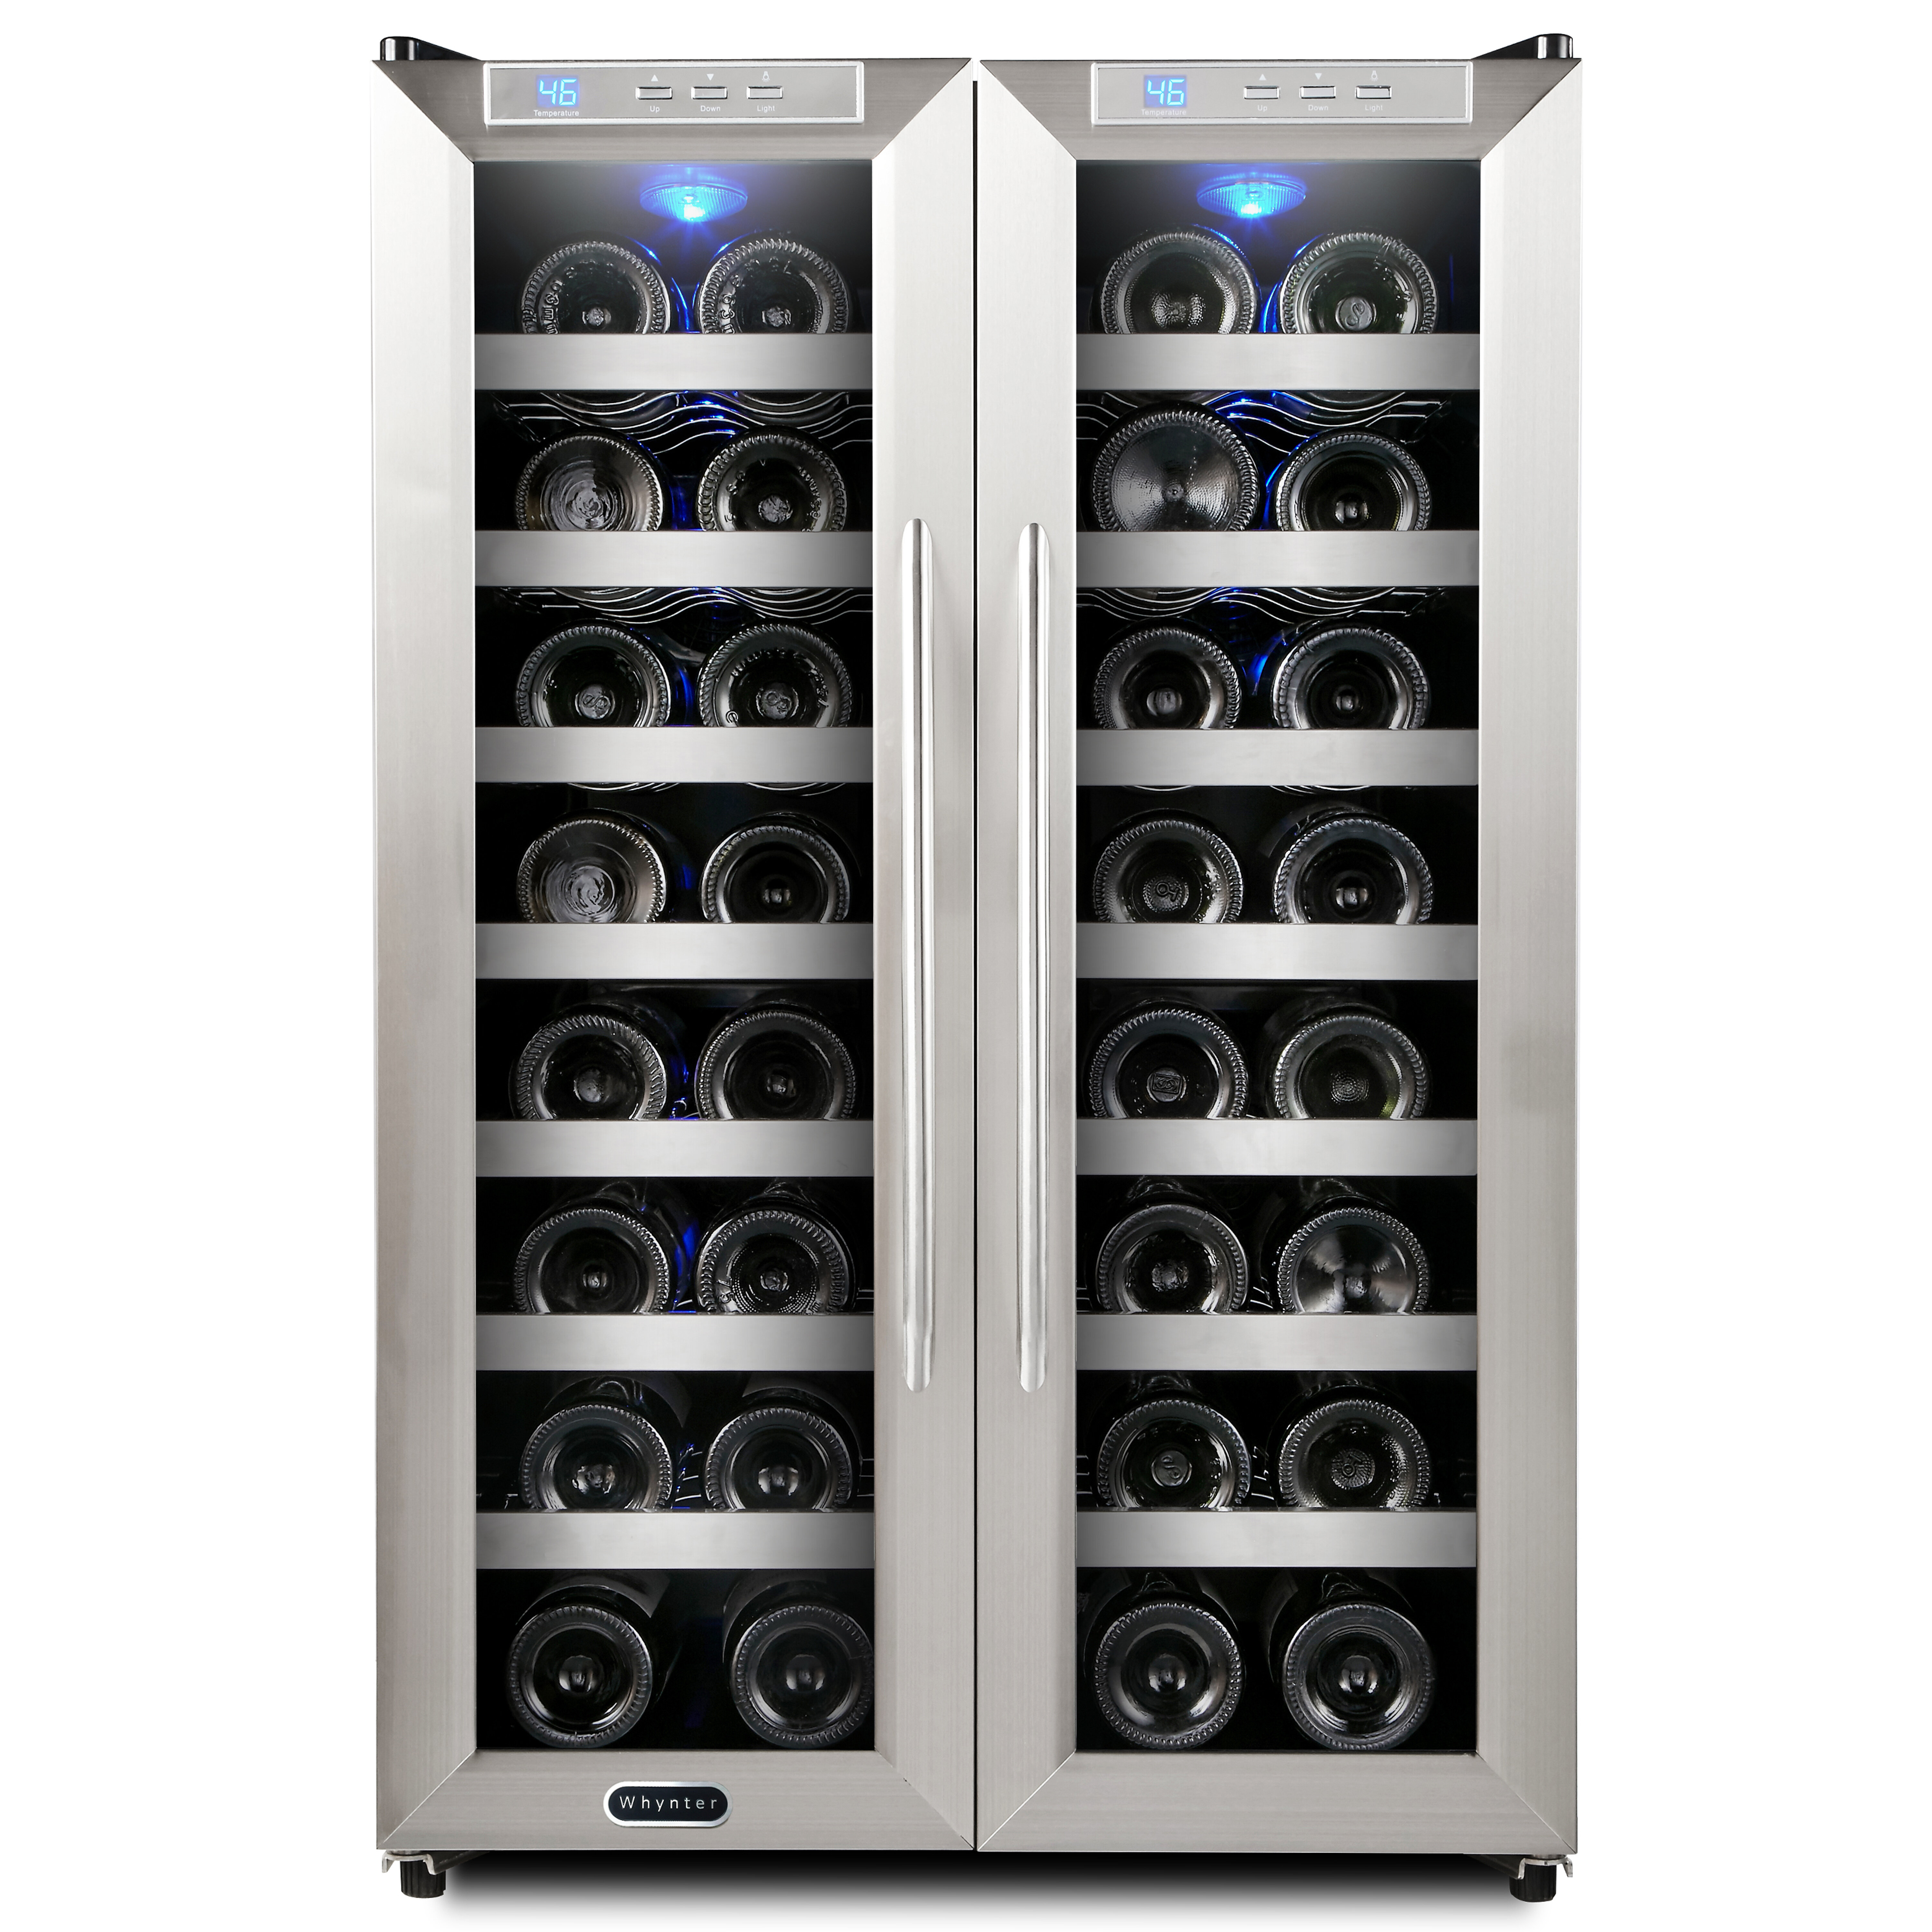 beverage coolers all left countertops shop bottle wine countertop newair compressor cooler refrigerator awr online